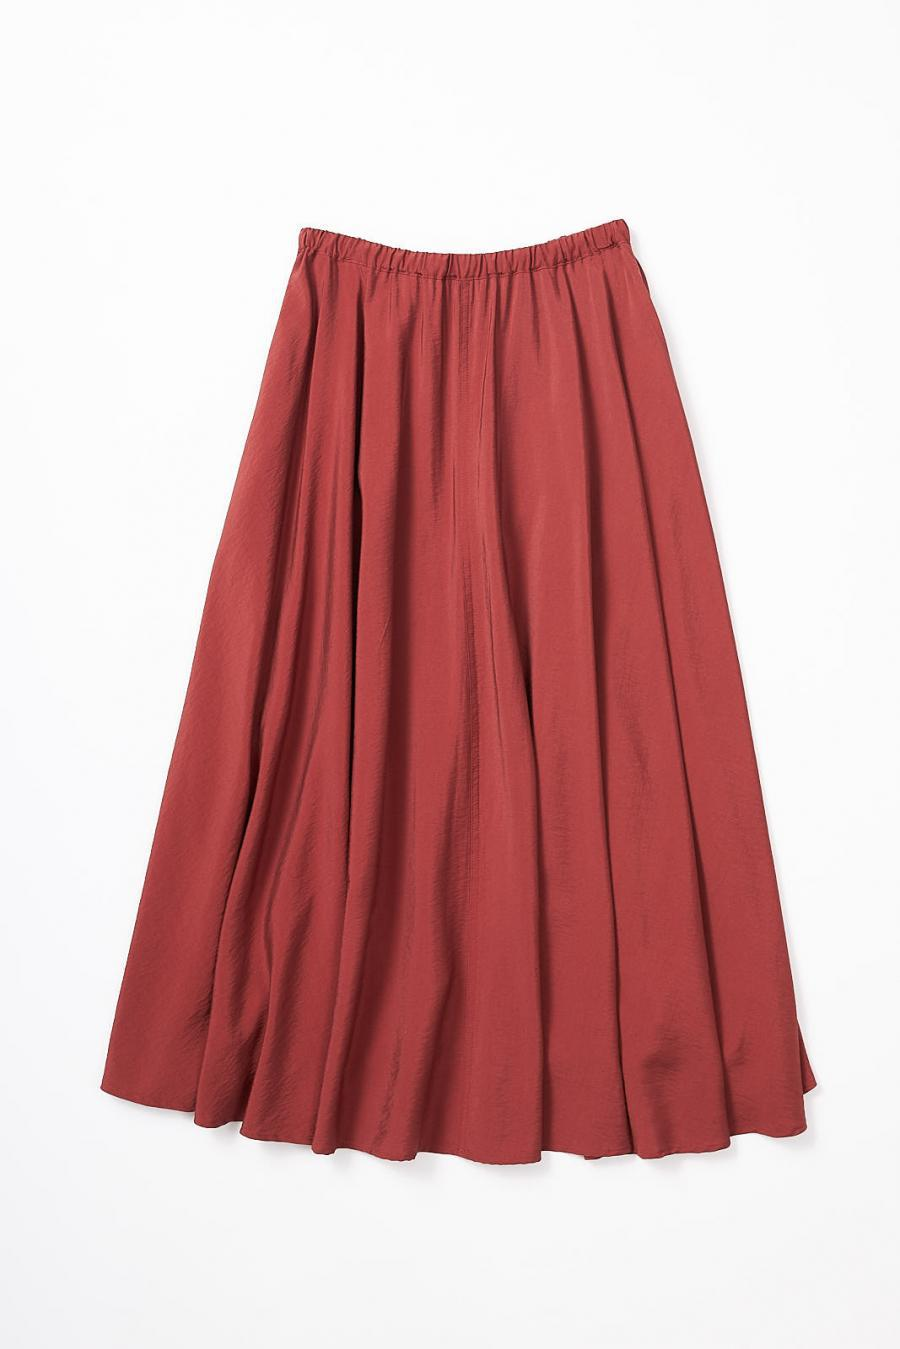 West String Skirt